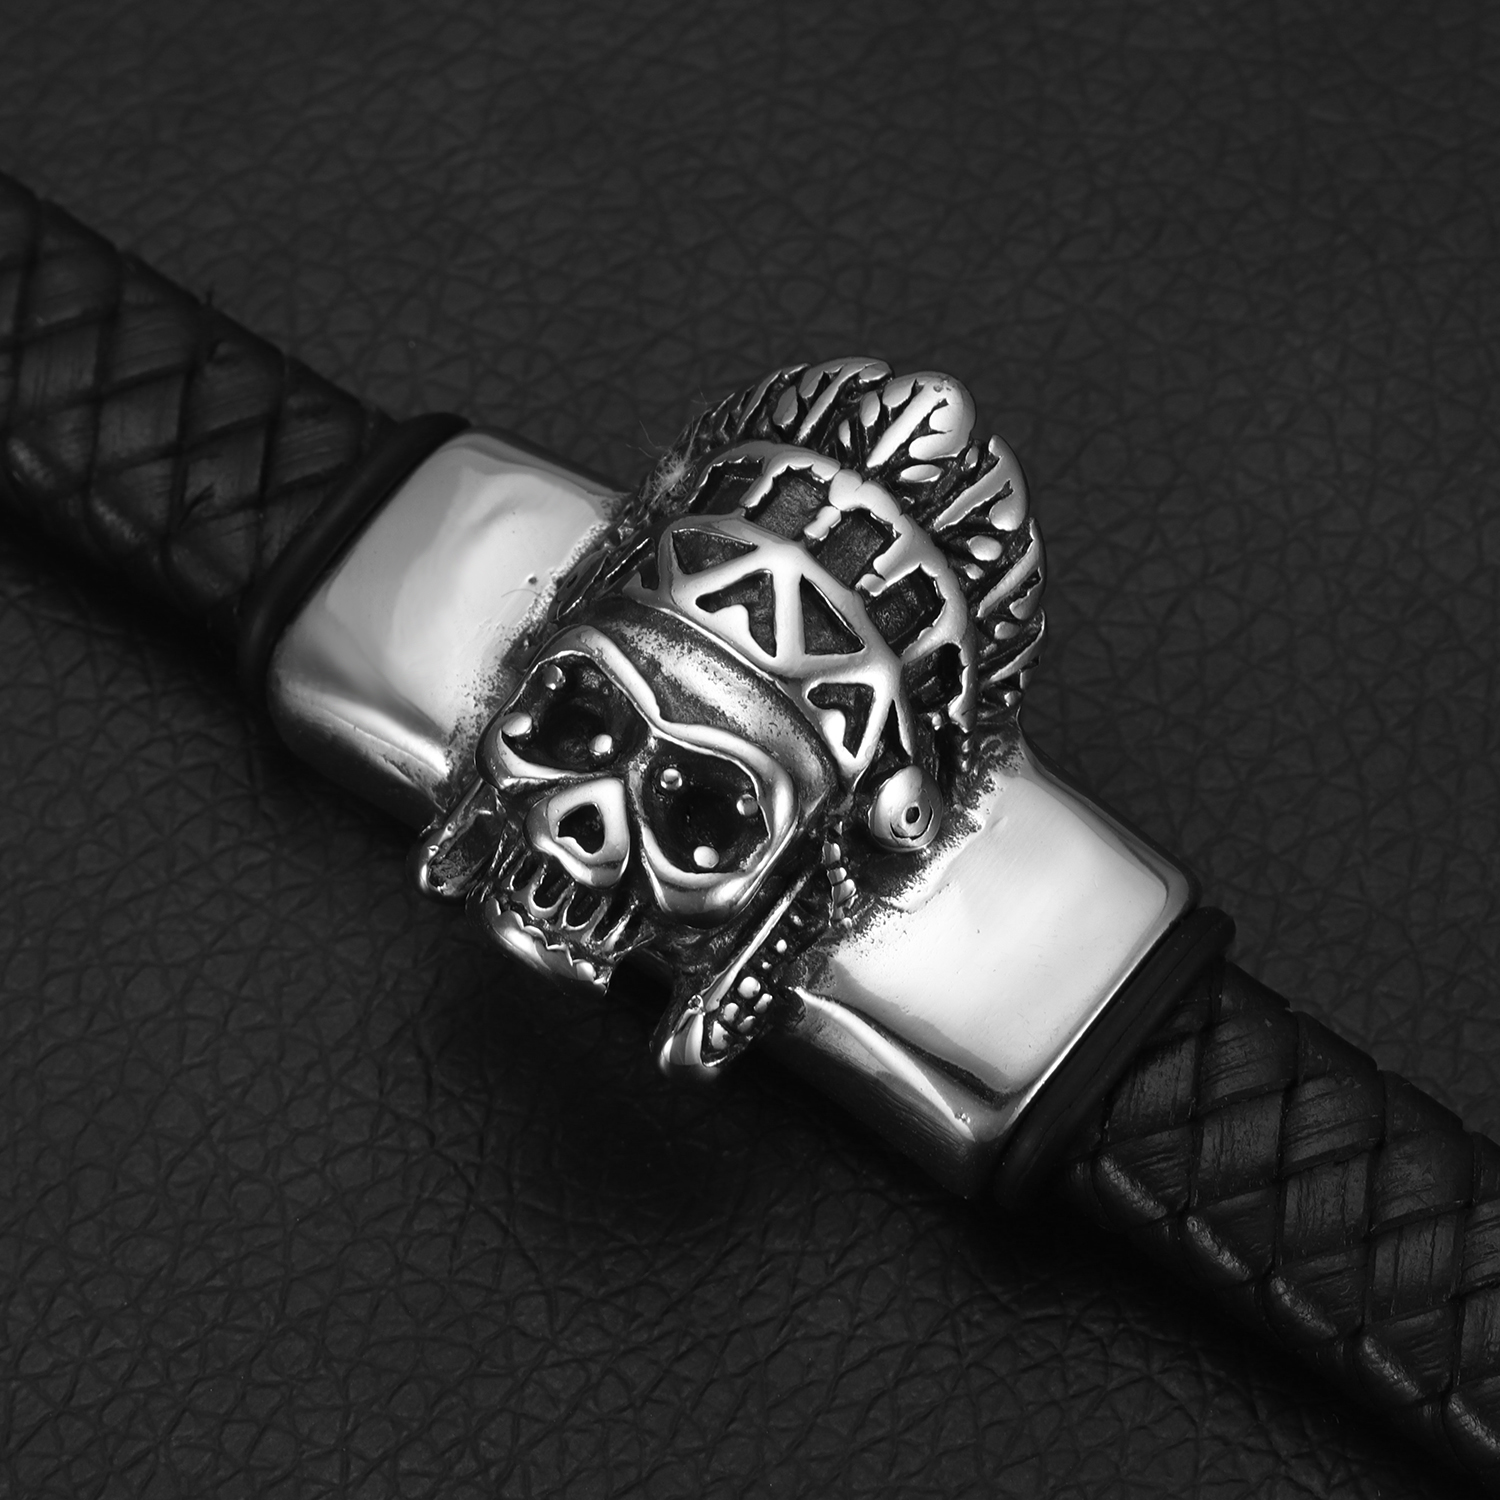 Stainless Steel Slider Beads Punk Skull Chief 12 6mm Hole Slide Charms for Men Leather Bracelet Jewelry Making DIY Supplies in Beads from Jewelry Accessories